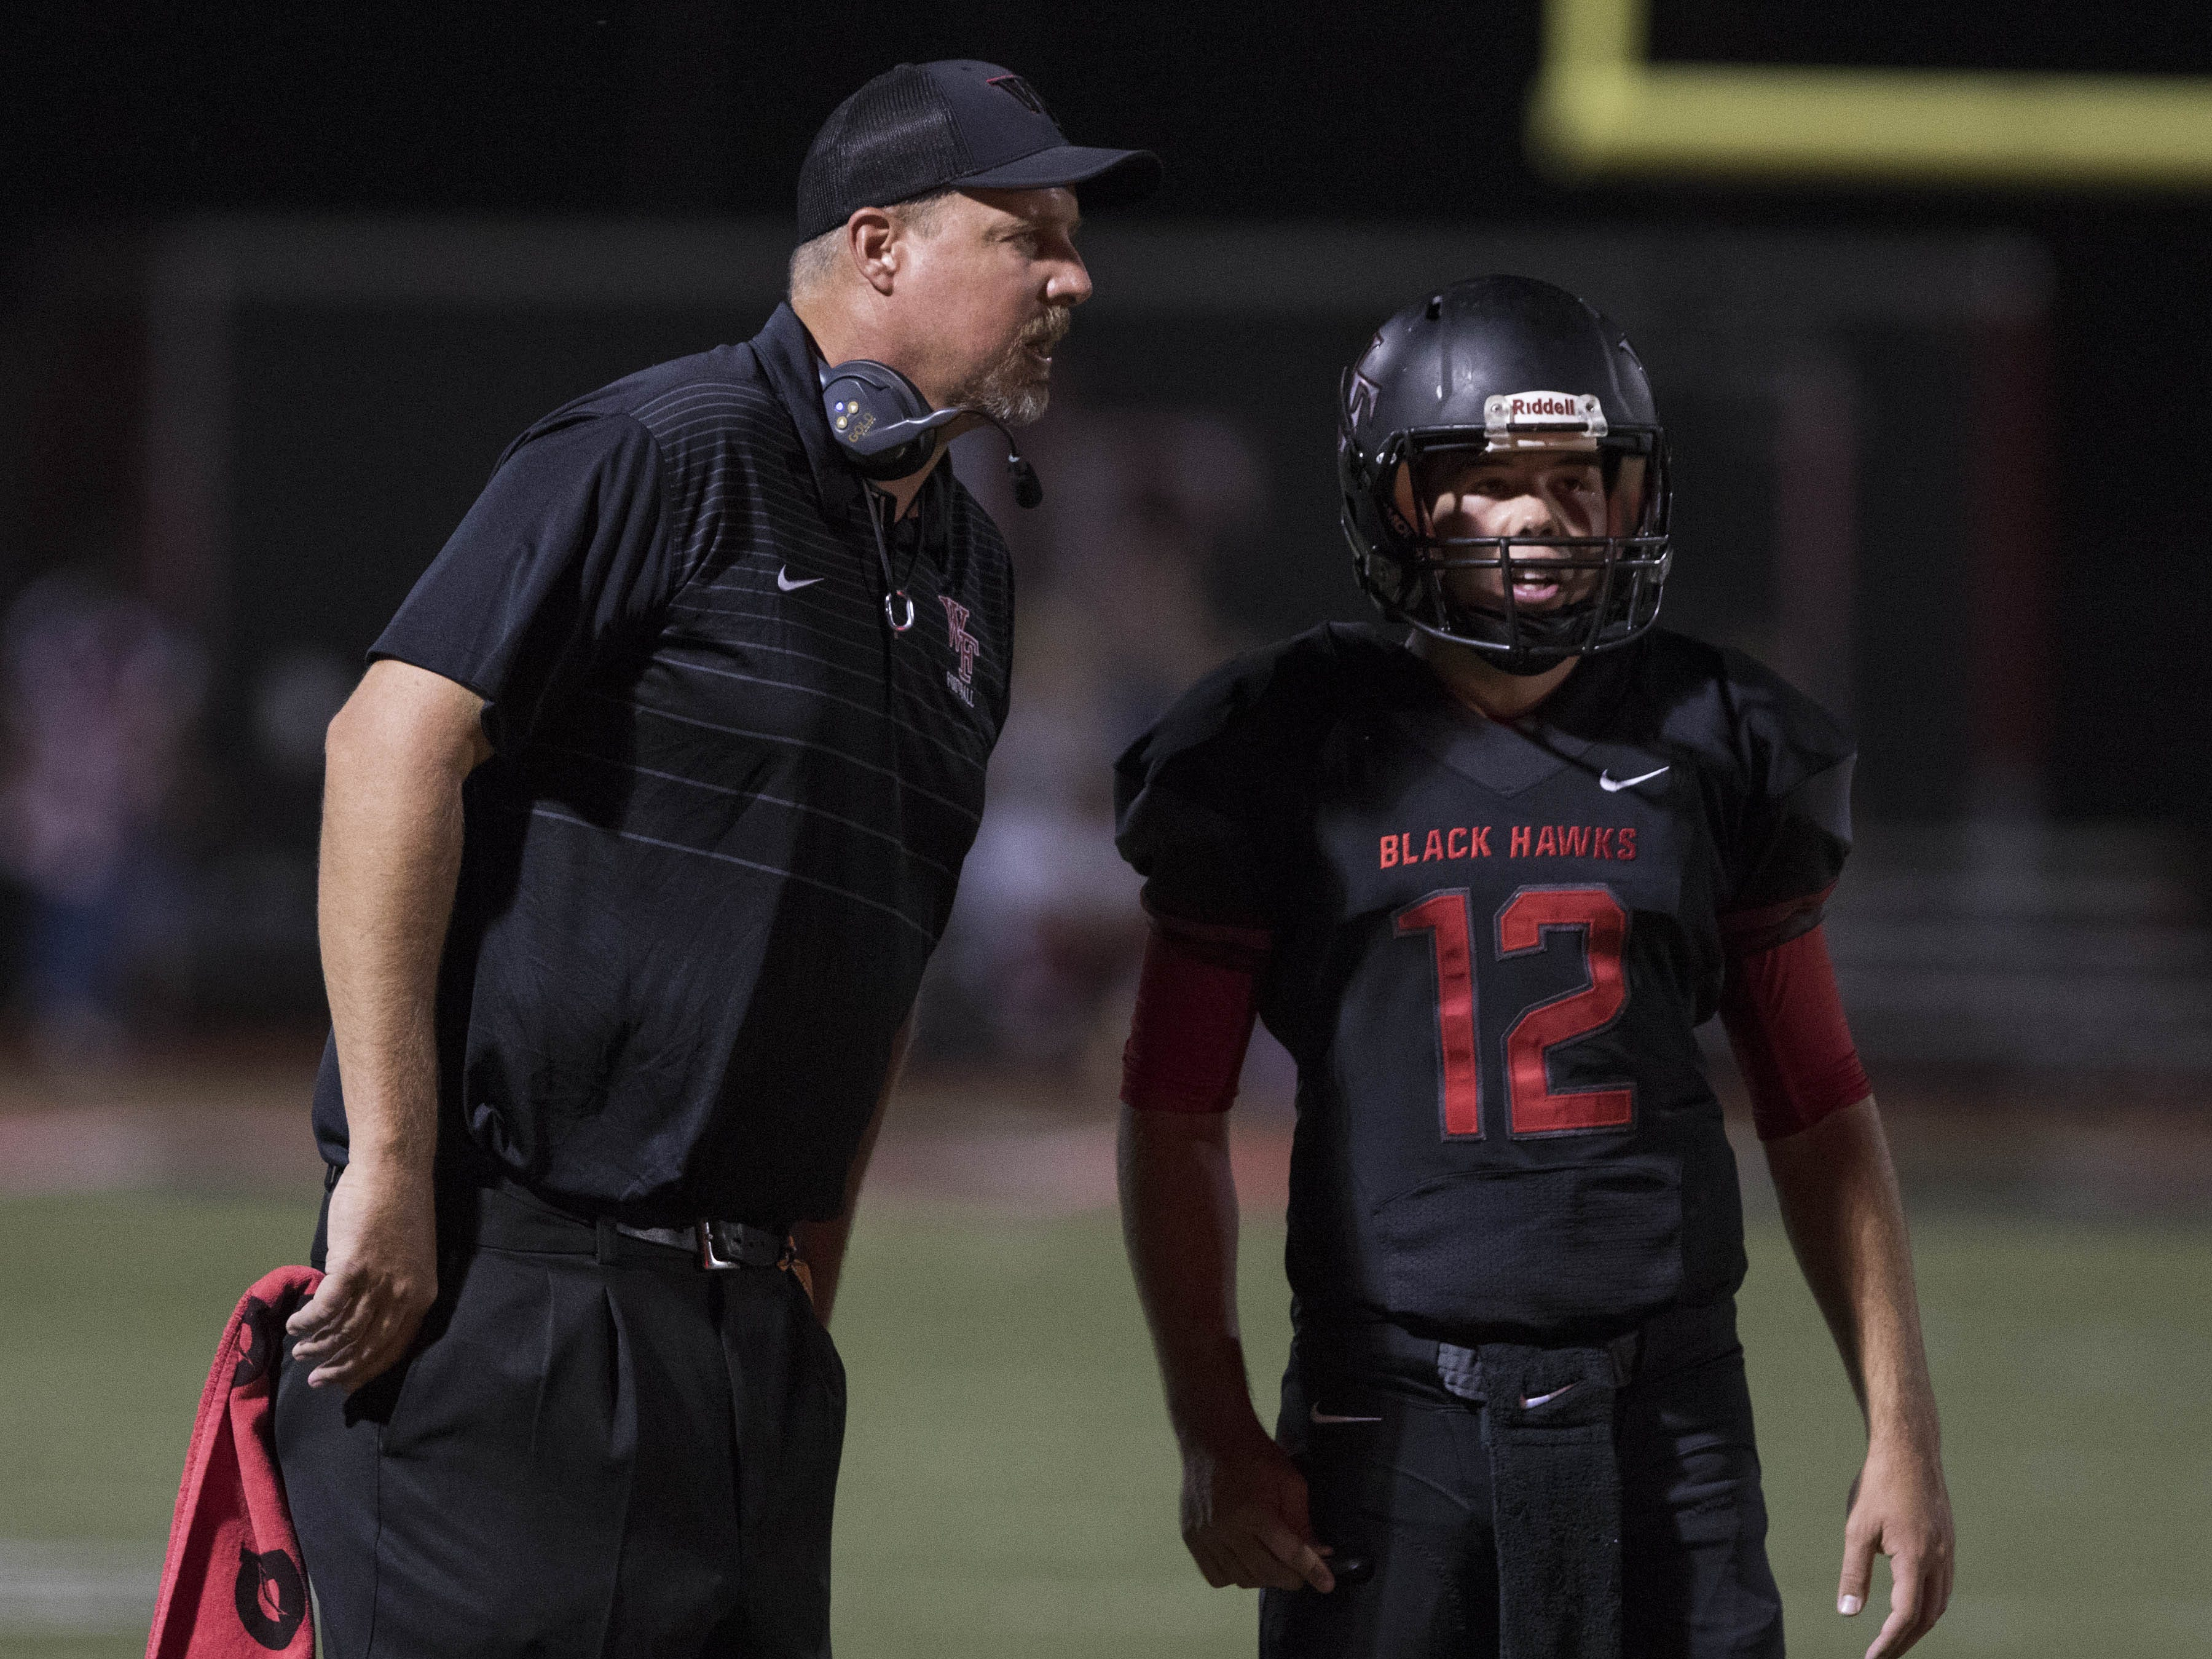 Williams Field head coach Steve Campbell talks to his quarterback Zack Shepherd during their game with Sunrise Mountain in Gilbert Friday, Aug.24, 2018.#azhsfb